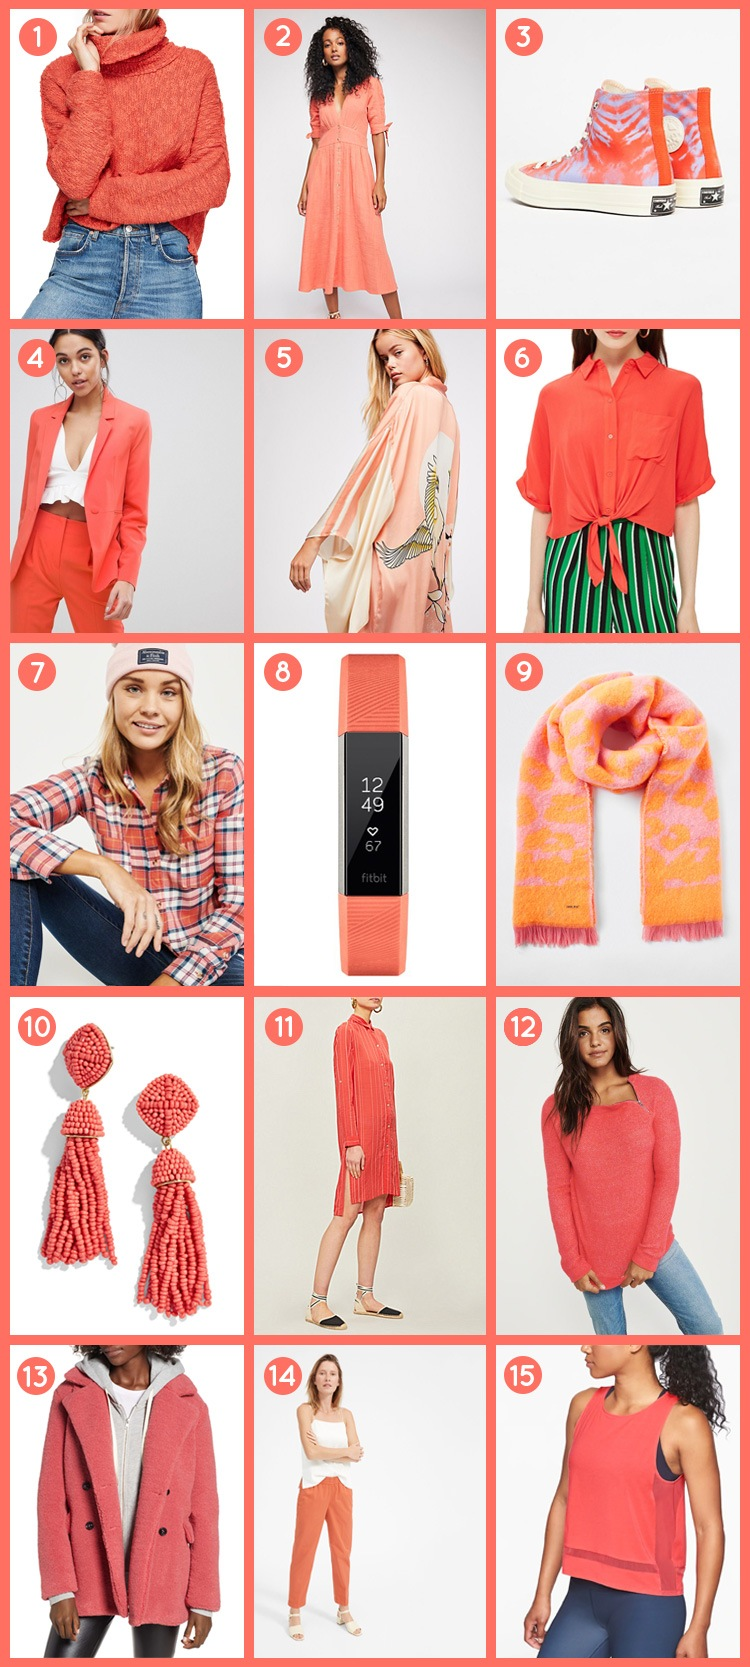 Brighten Up Your Wardrobe With Pantone's Color of the Year 2019, Living Coral | The-E-Tailer.com/Blog